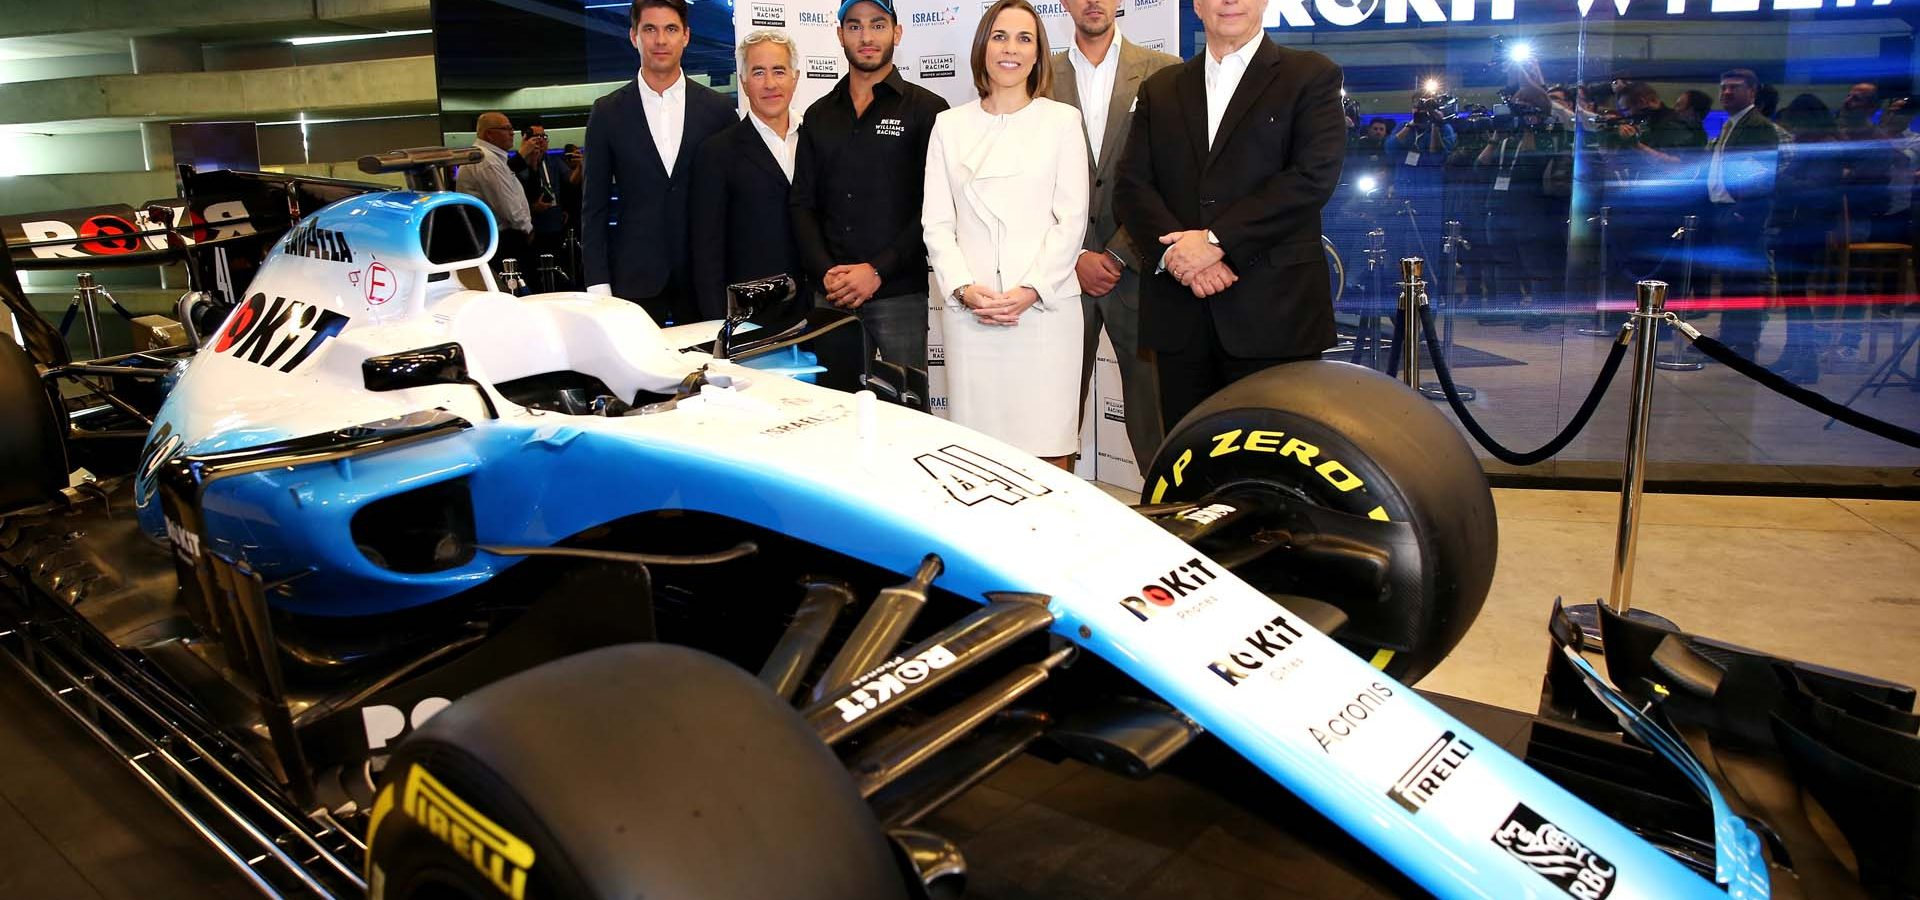 Gyarfas Olah, Roy Nissany Manager with  Sylvan Adams, President of Roy Nissany F1 Management,  Roy Nissany, Offical Williams Racing Test Driver, Claire Williams, Williams Racing Deputy Team Principal, Marc Harris, Williams Racing Young Driver Academy and Nehemia Peres. Roy Nissany Official Test Driver Announcement, Wednesday 15th January 2020. Tel Aviv, Israel